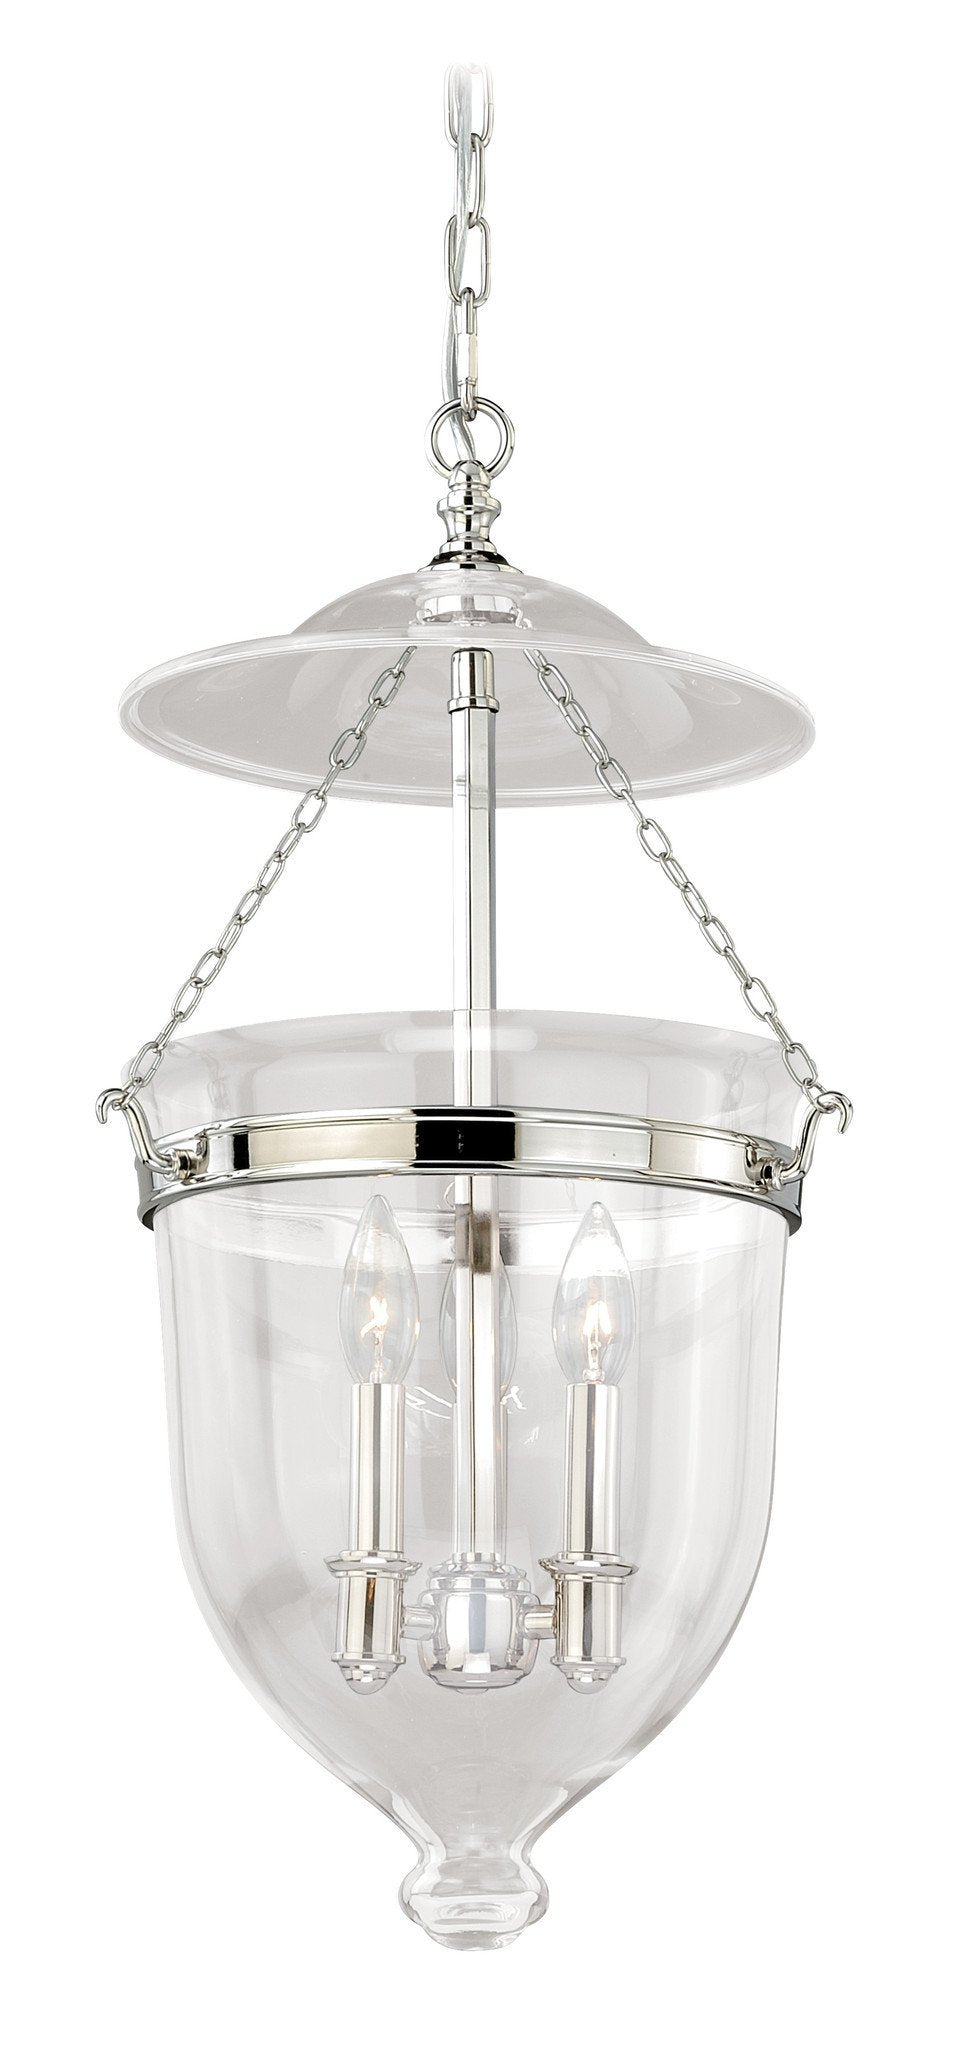 Vaxcel 630 Series 12-3/4 Inch Pendant Polished Nickel W/clear Glass Model: P0119